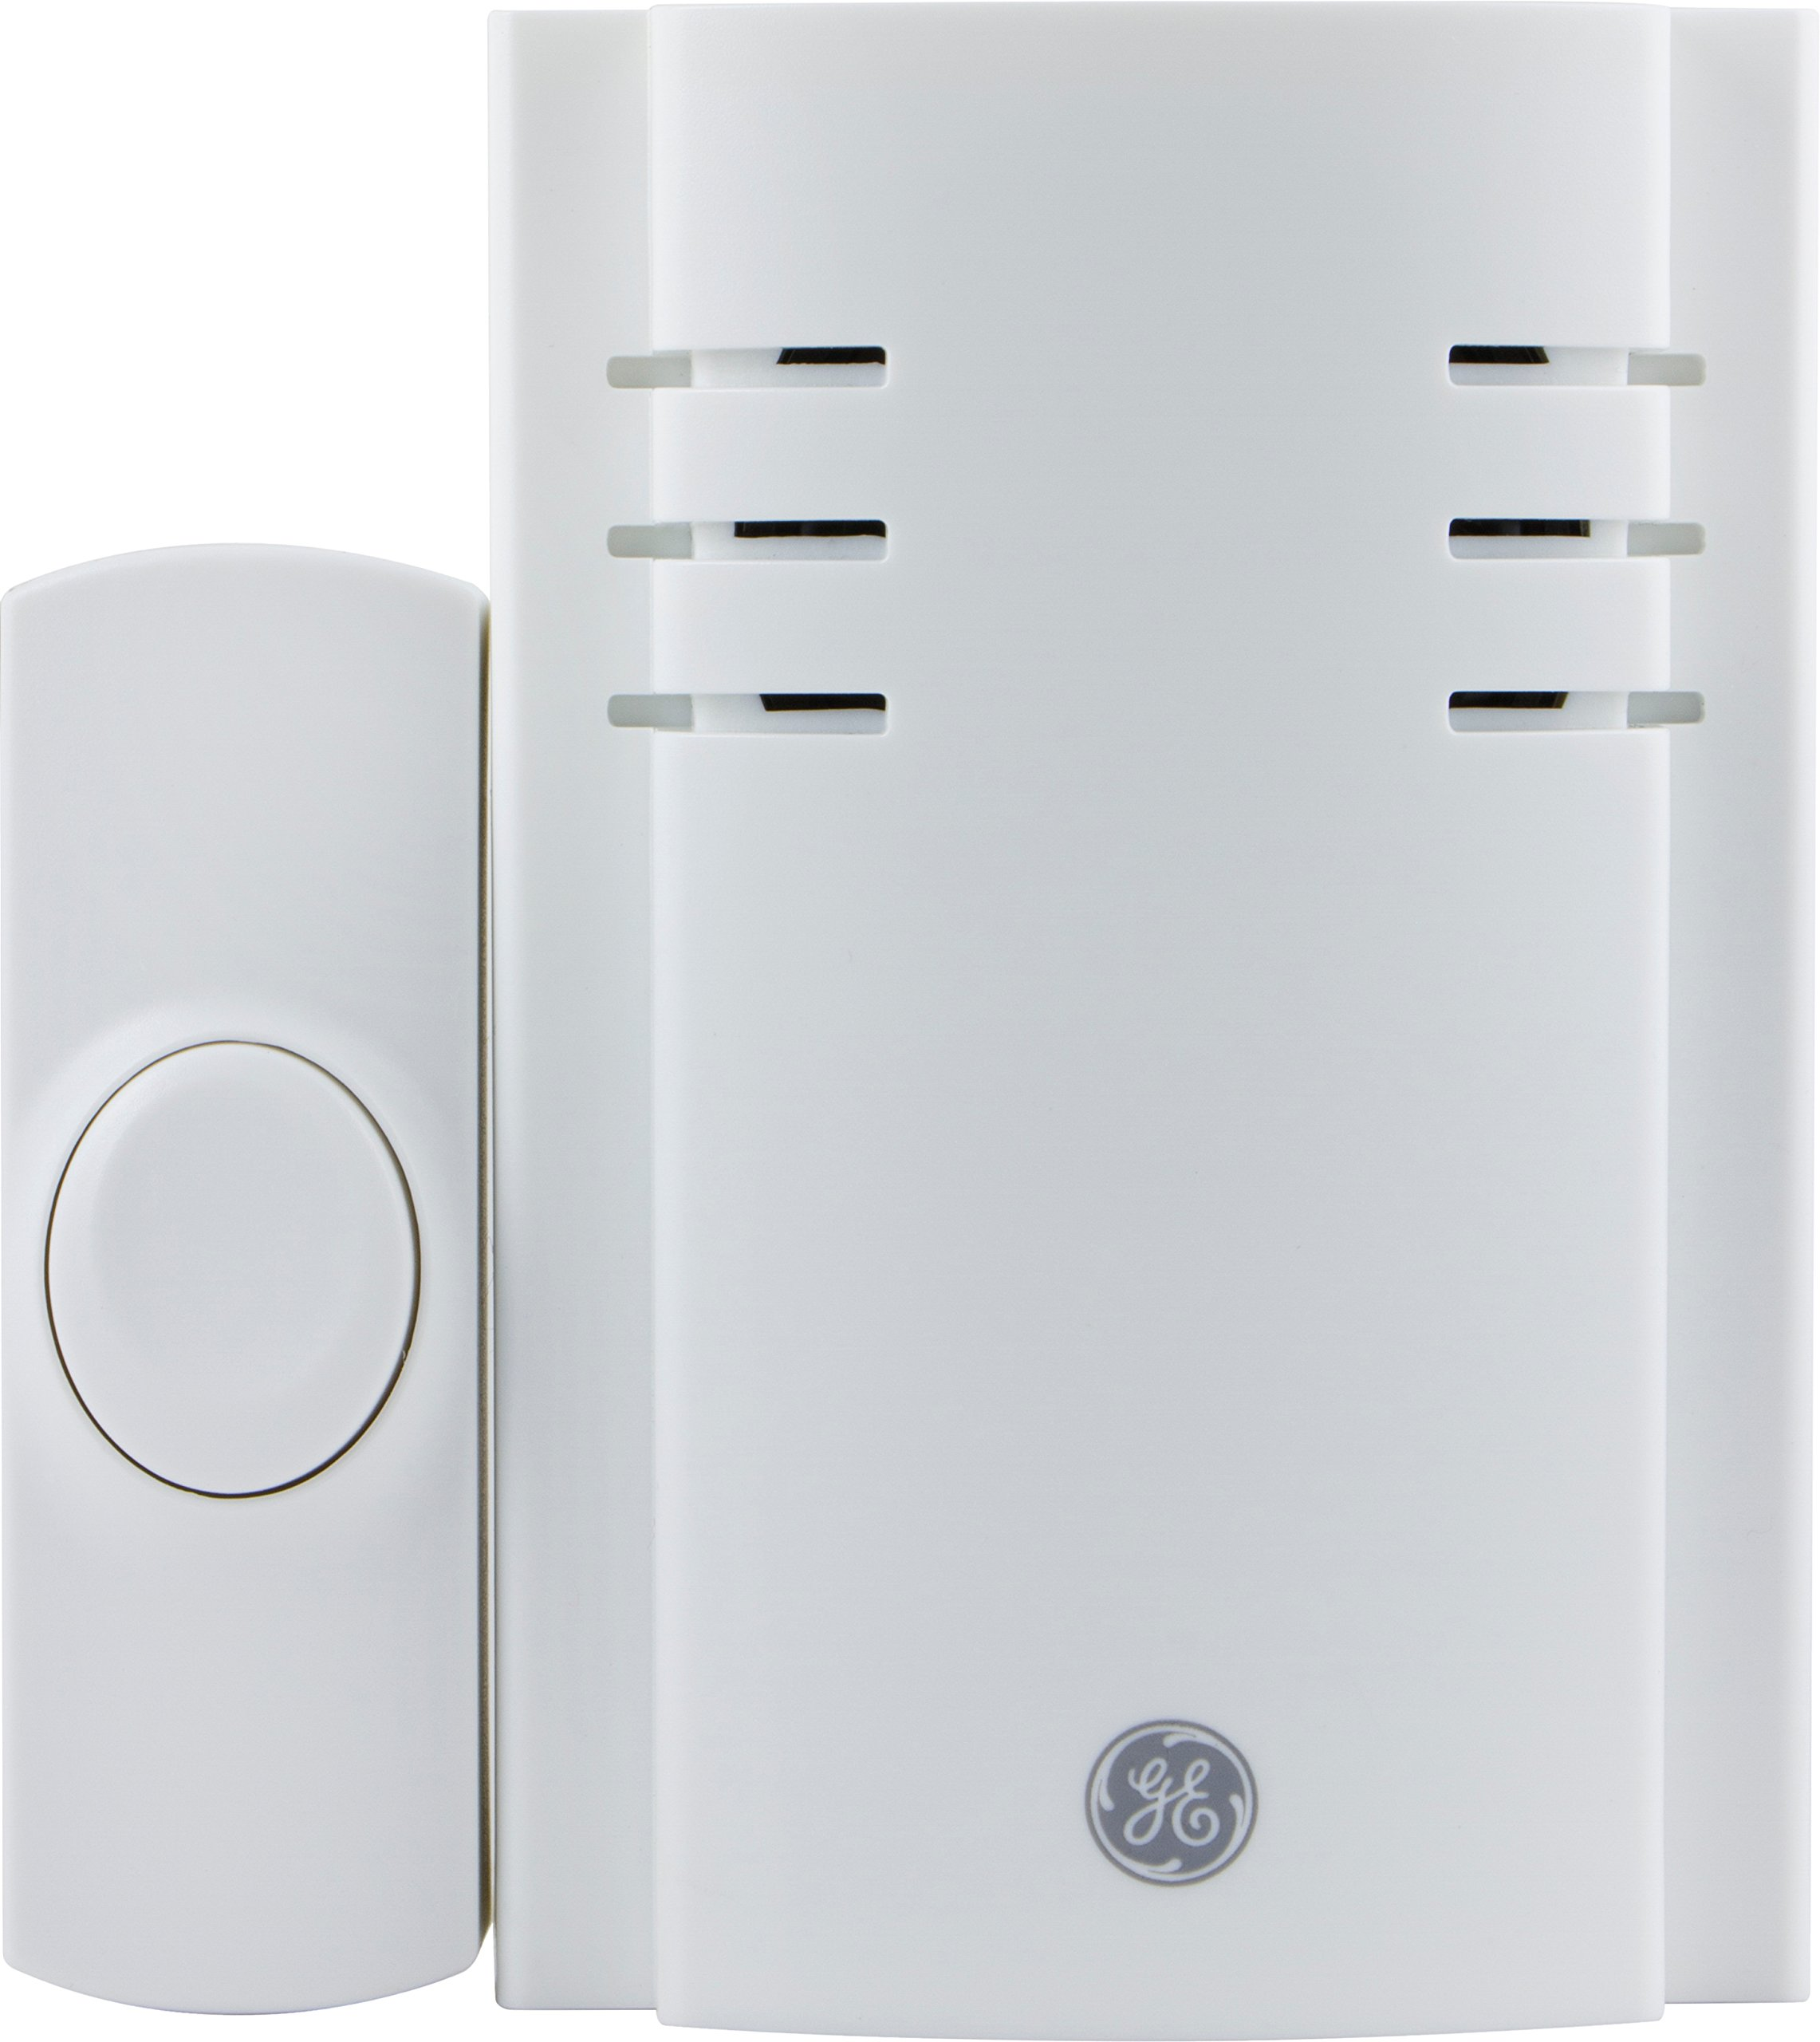 door depot home doors p ge with kit sounds wireless nickel chime kits the chimes